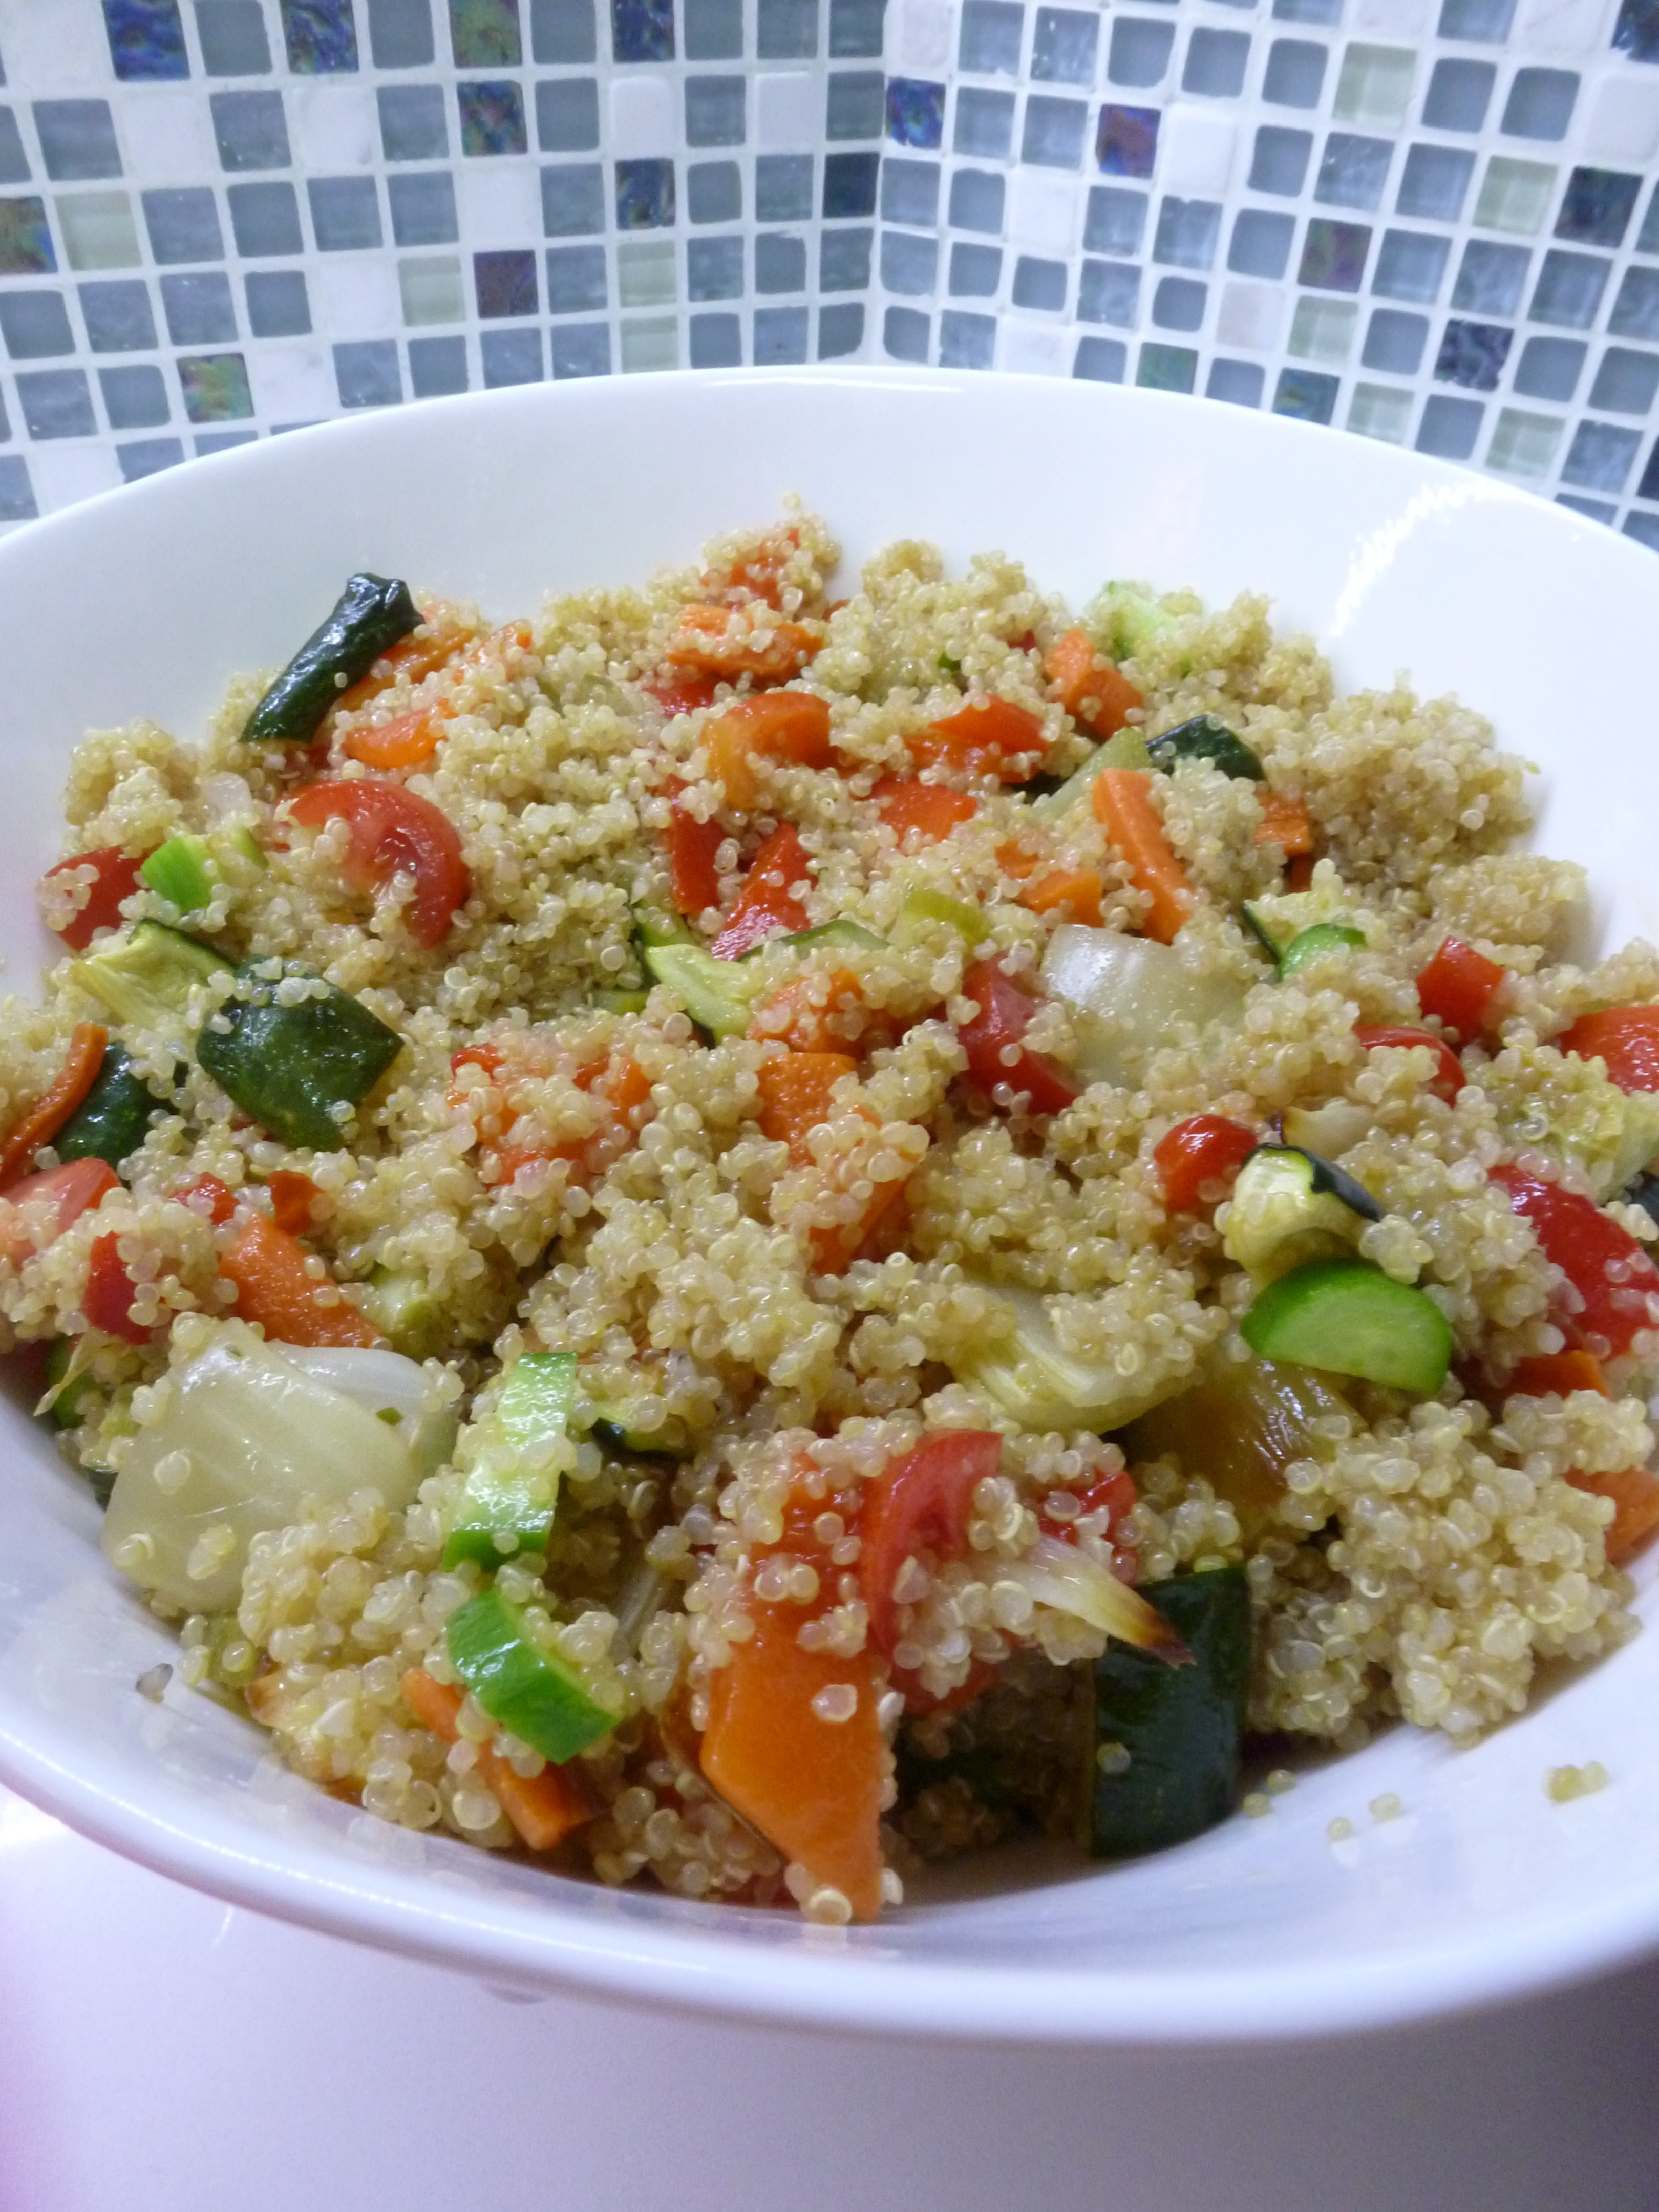 Quinoa Kosher For Passover  Roasted Ve able and Quinoa Salad with Citrus Dressing